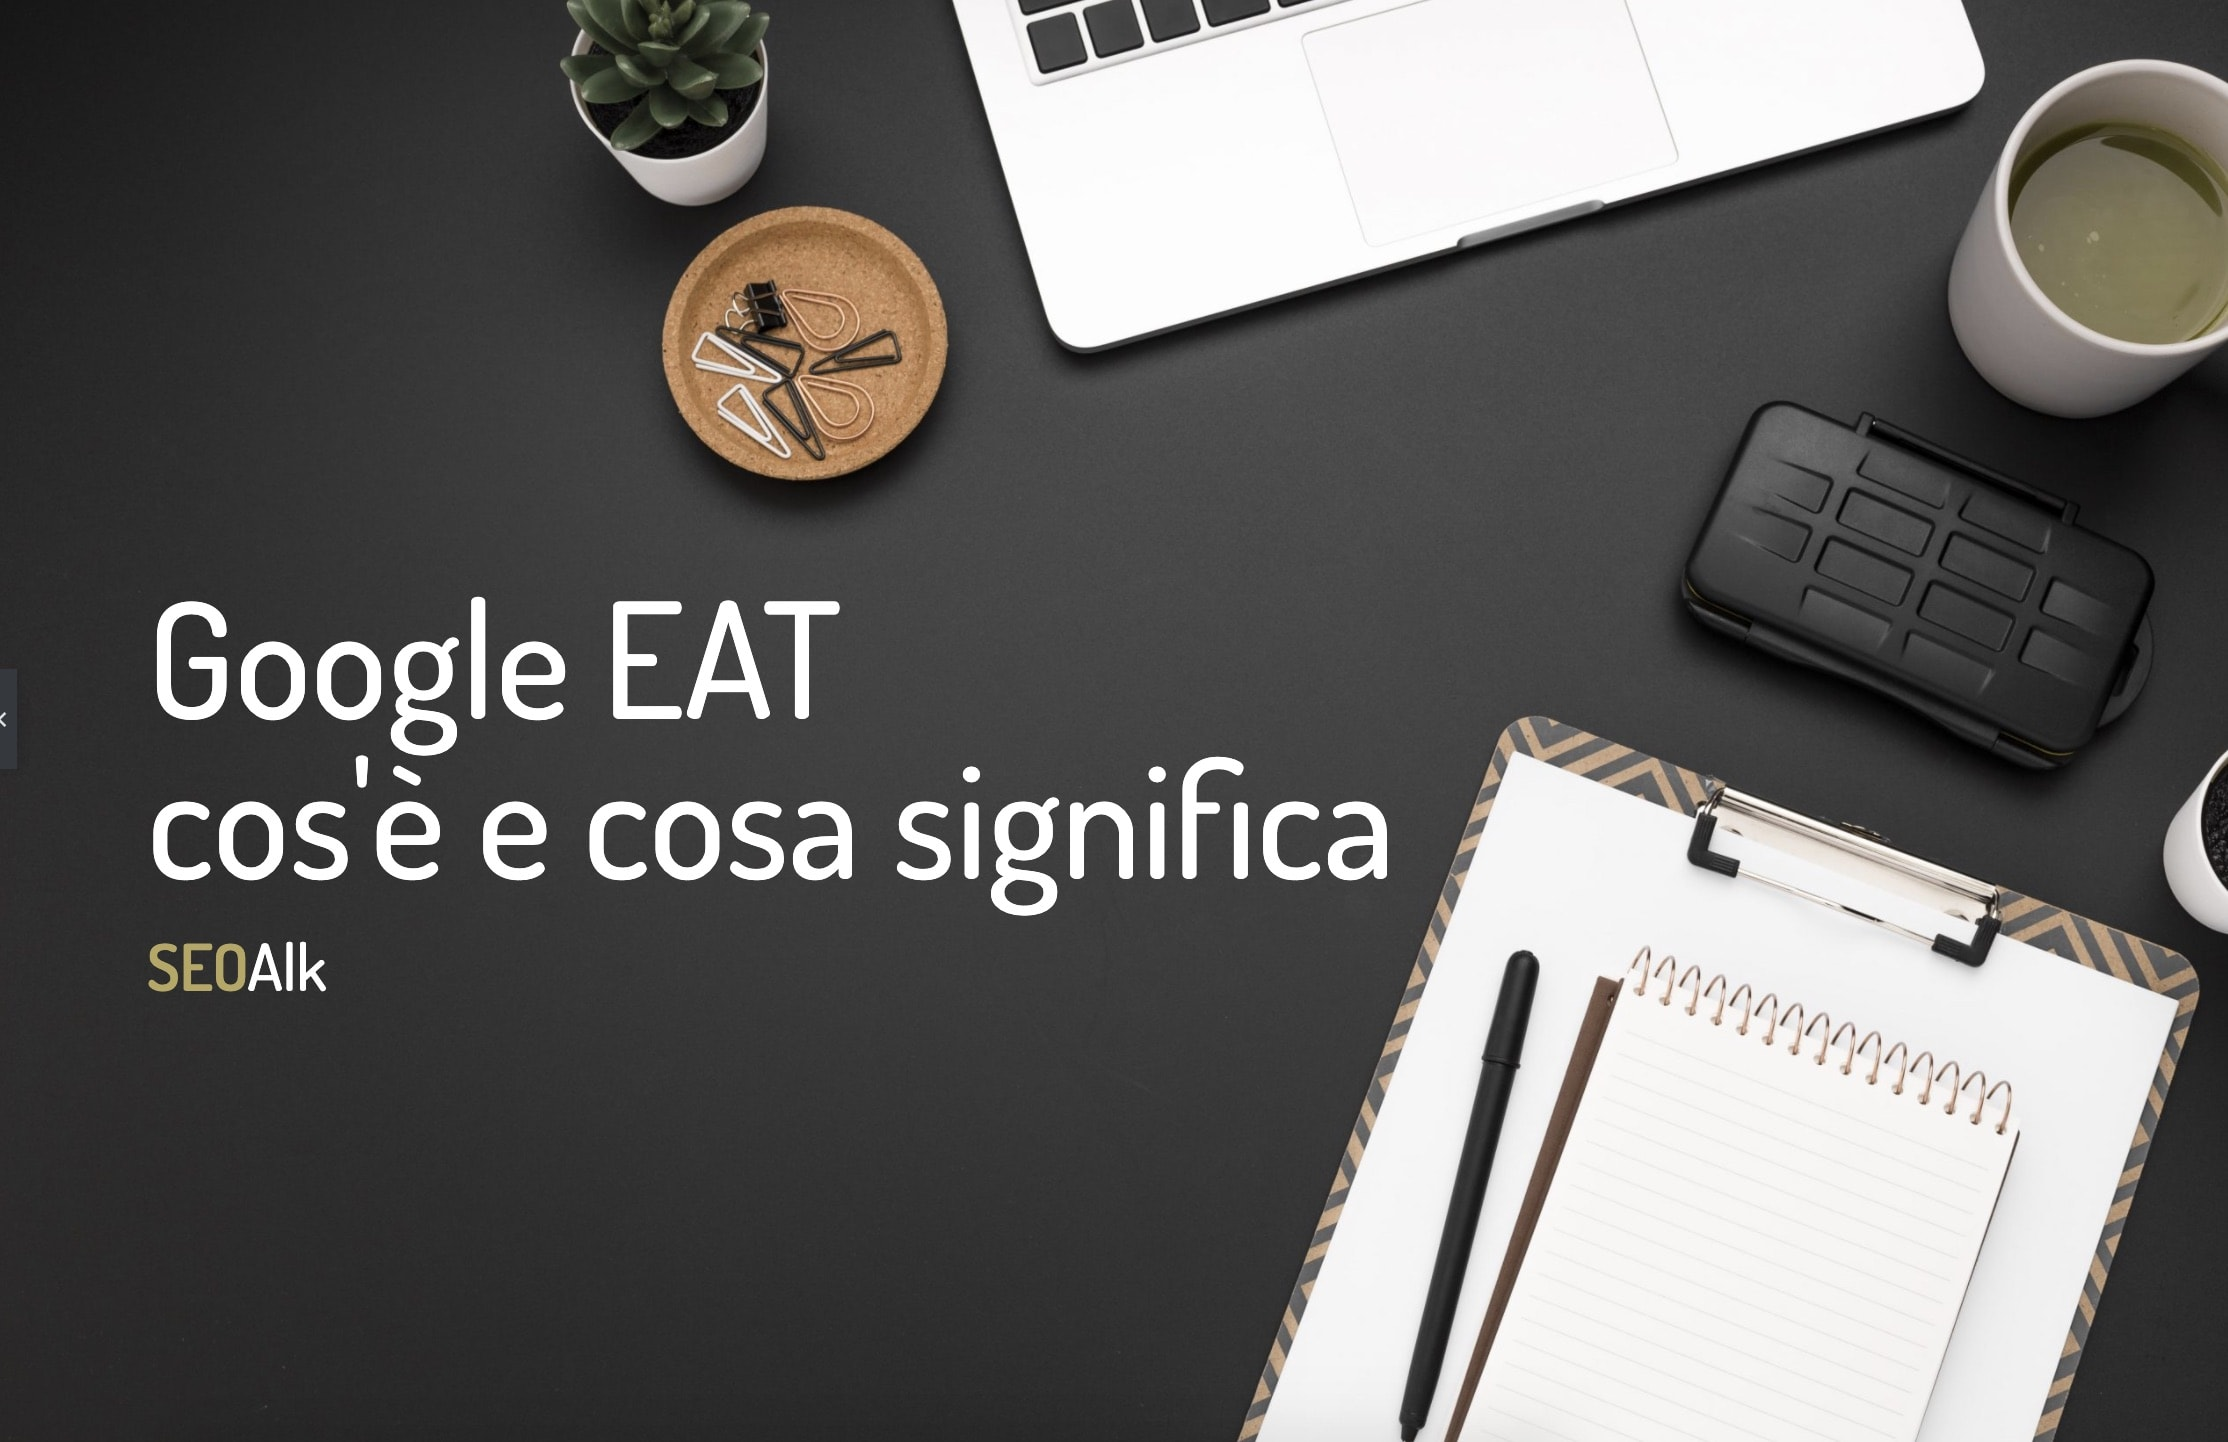 Google EAT SEOAlk